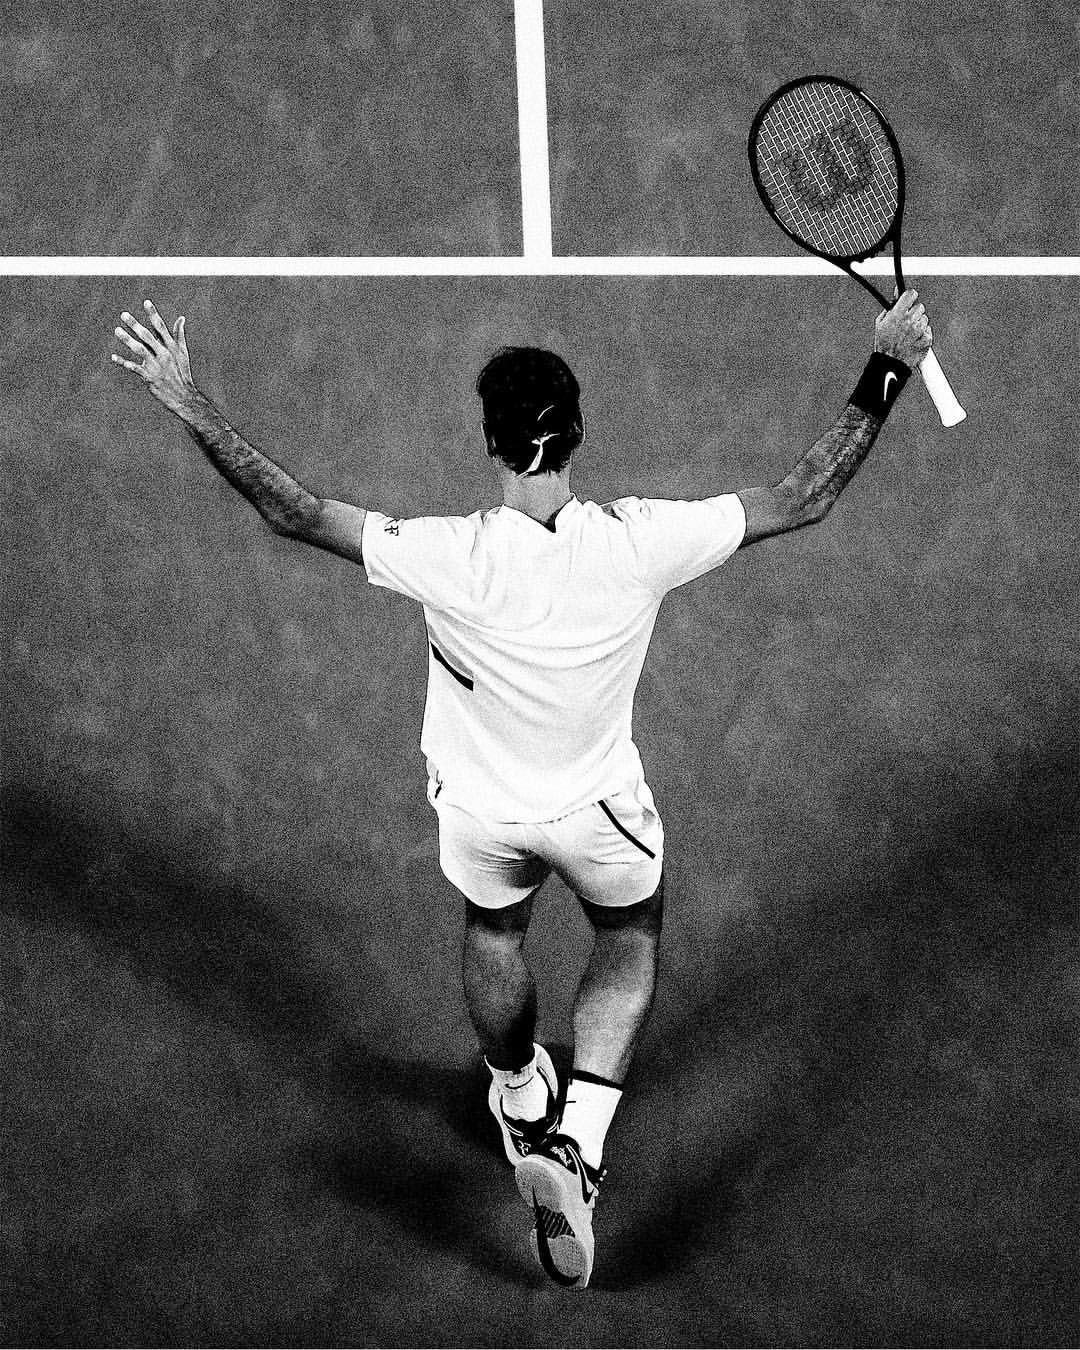 Pin by Lenore Adkins on My favorite tennis players | Roger